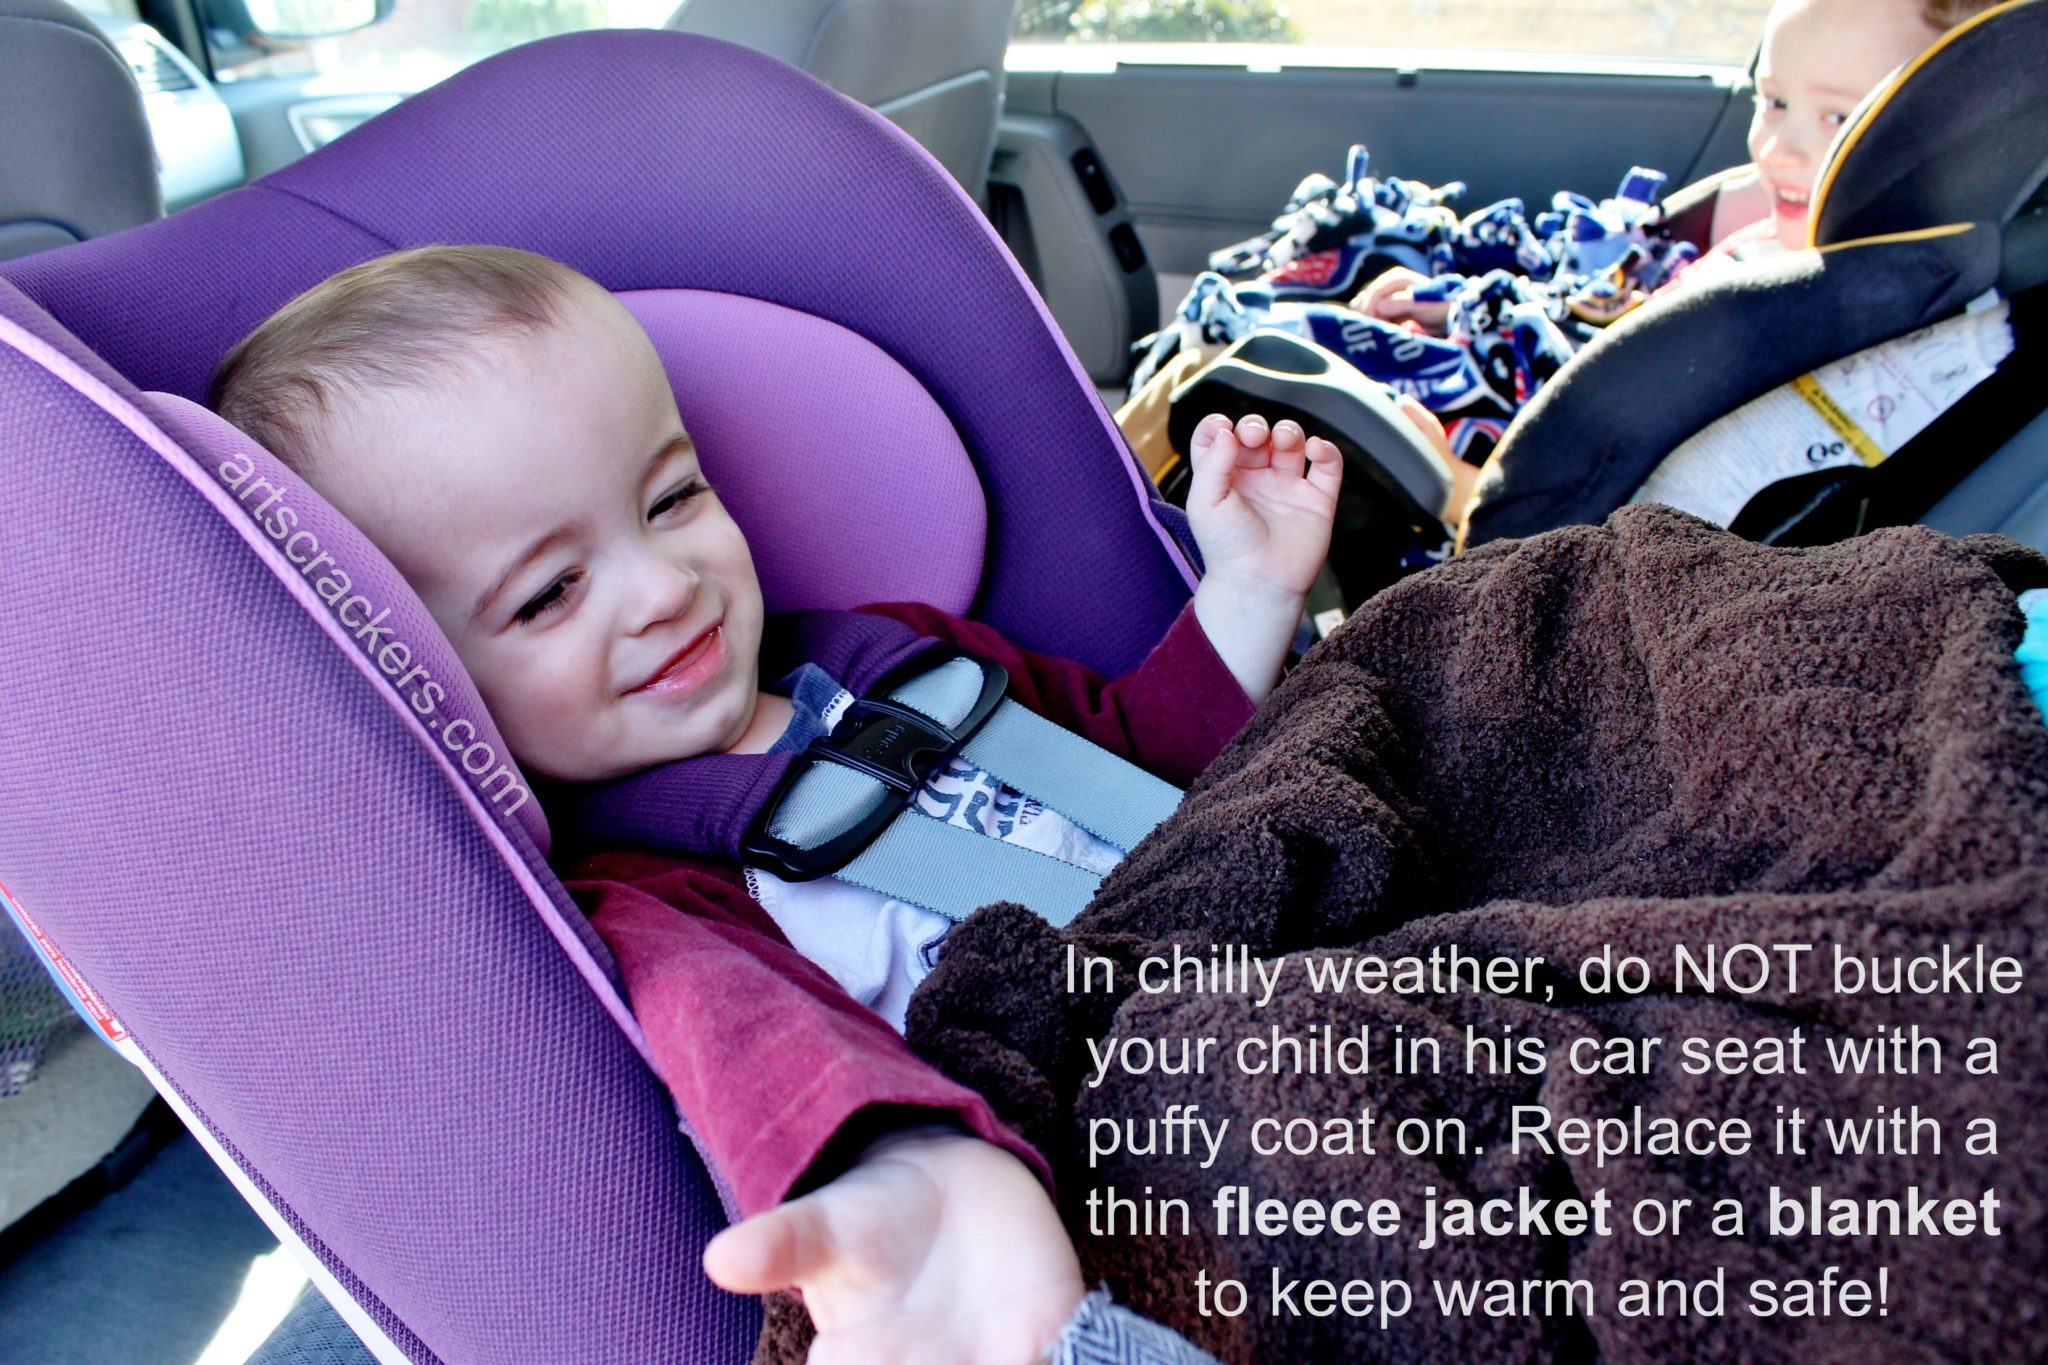 Winter Weather Car Seat Safety Tip. No puffy coats!